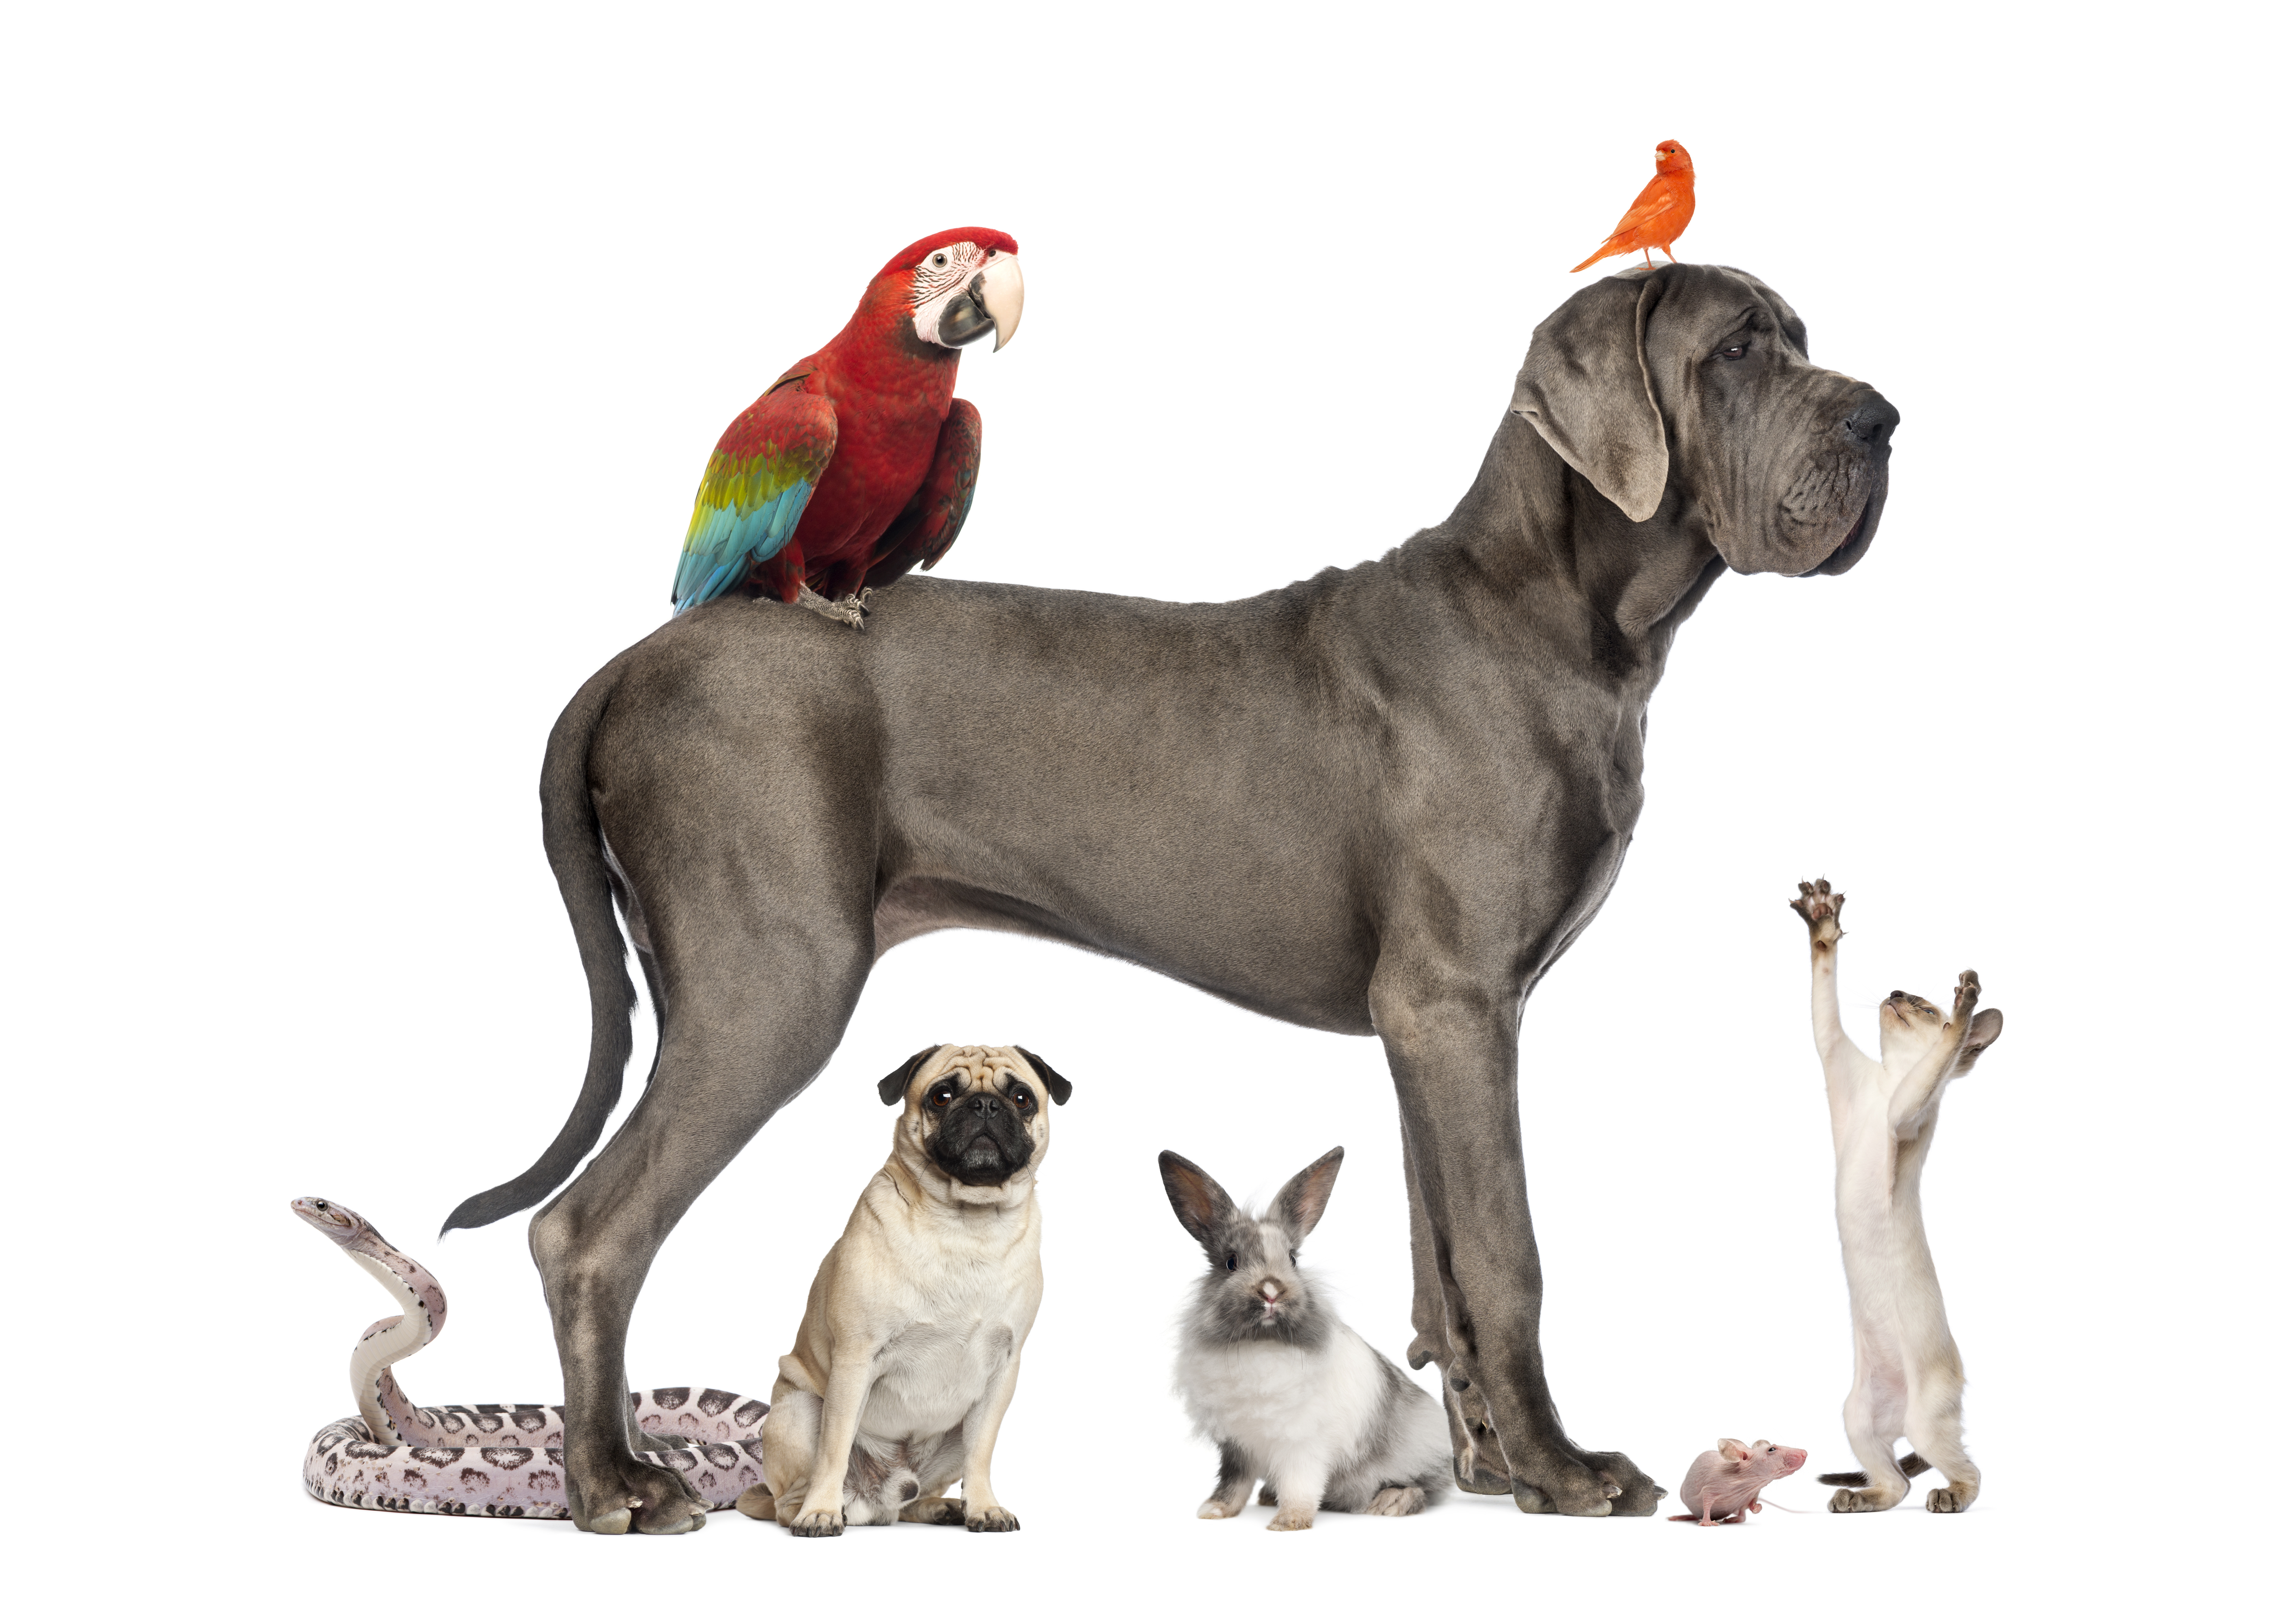 Great Dane Dog Wallpapers: Pets 5k Retina Ultra HD Wallpaper